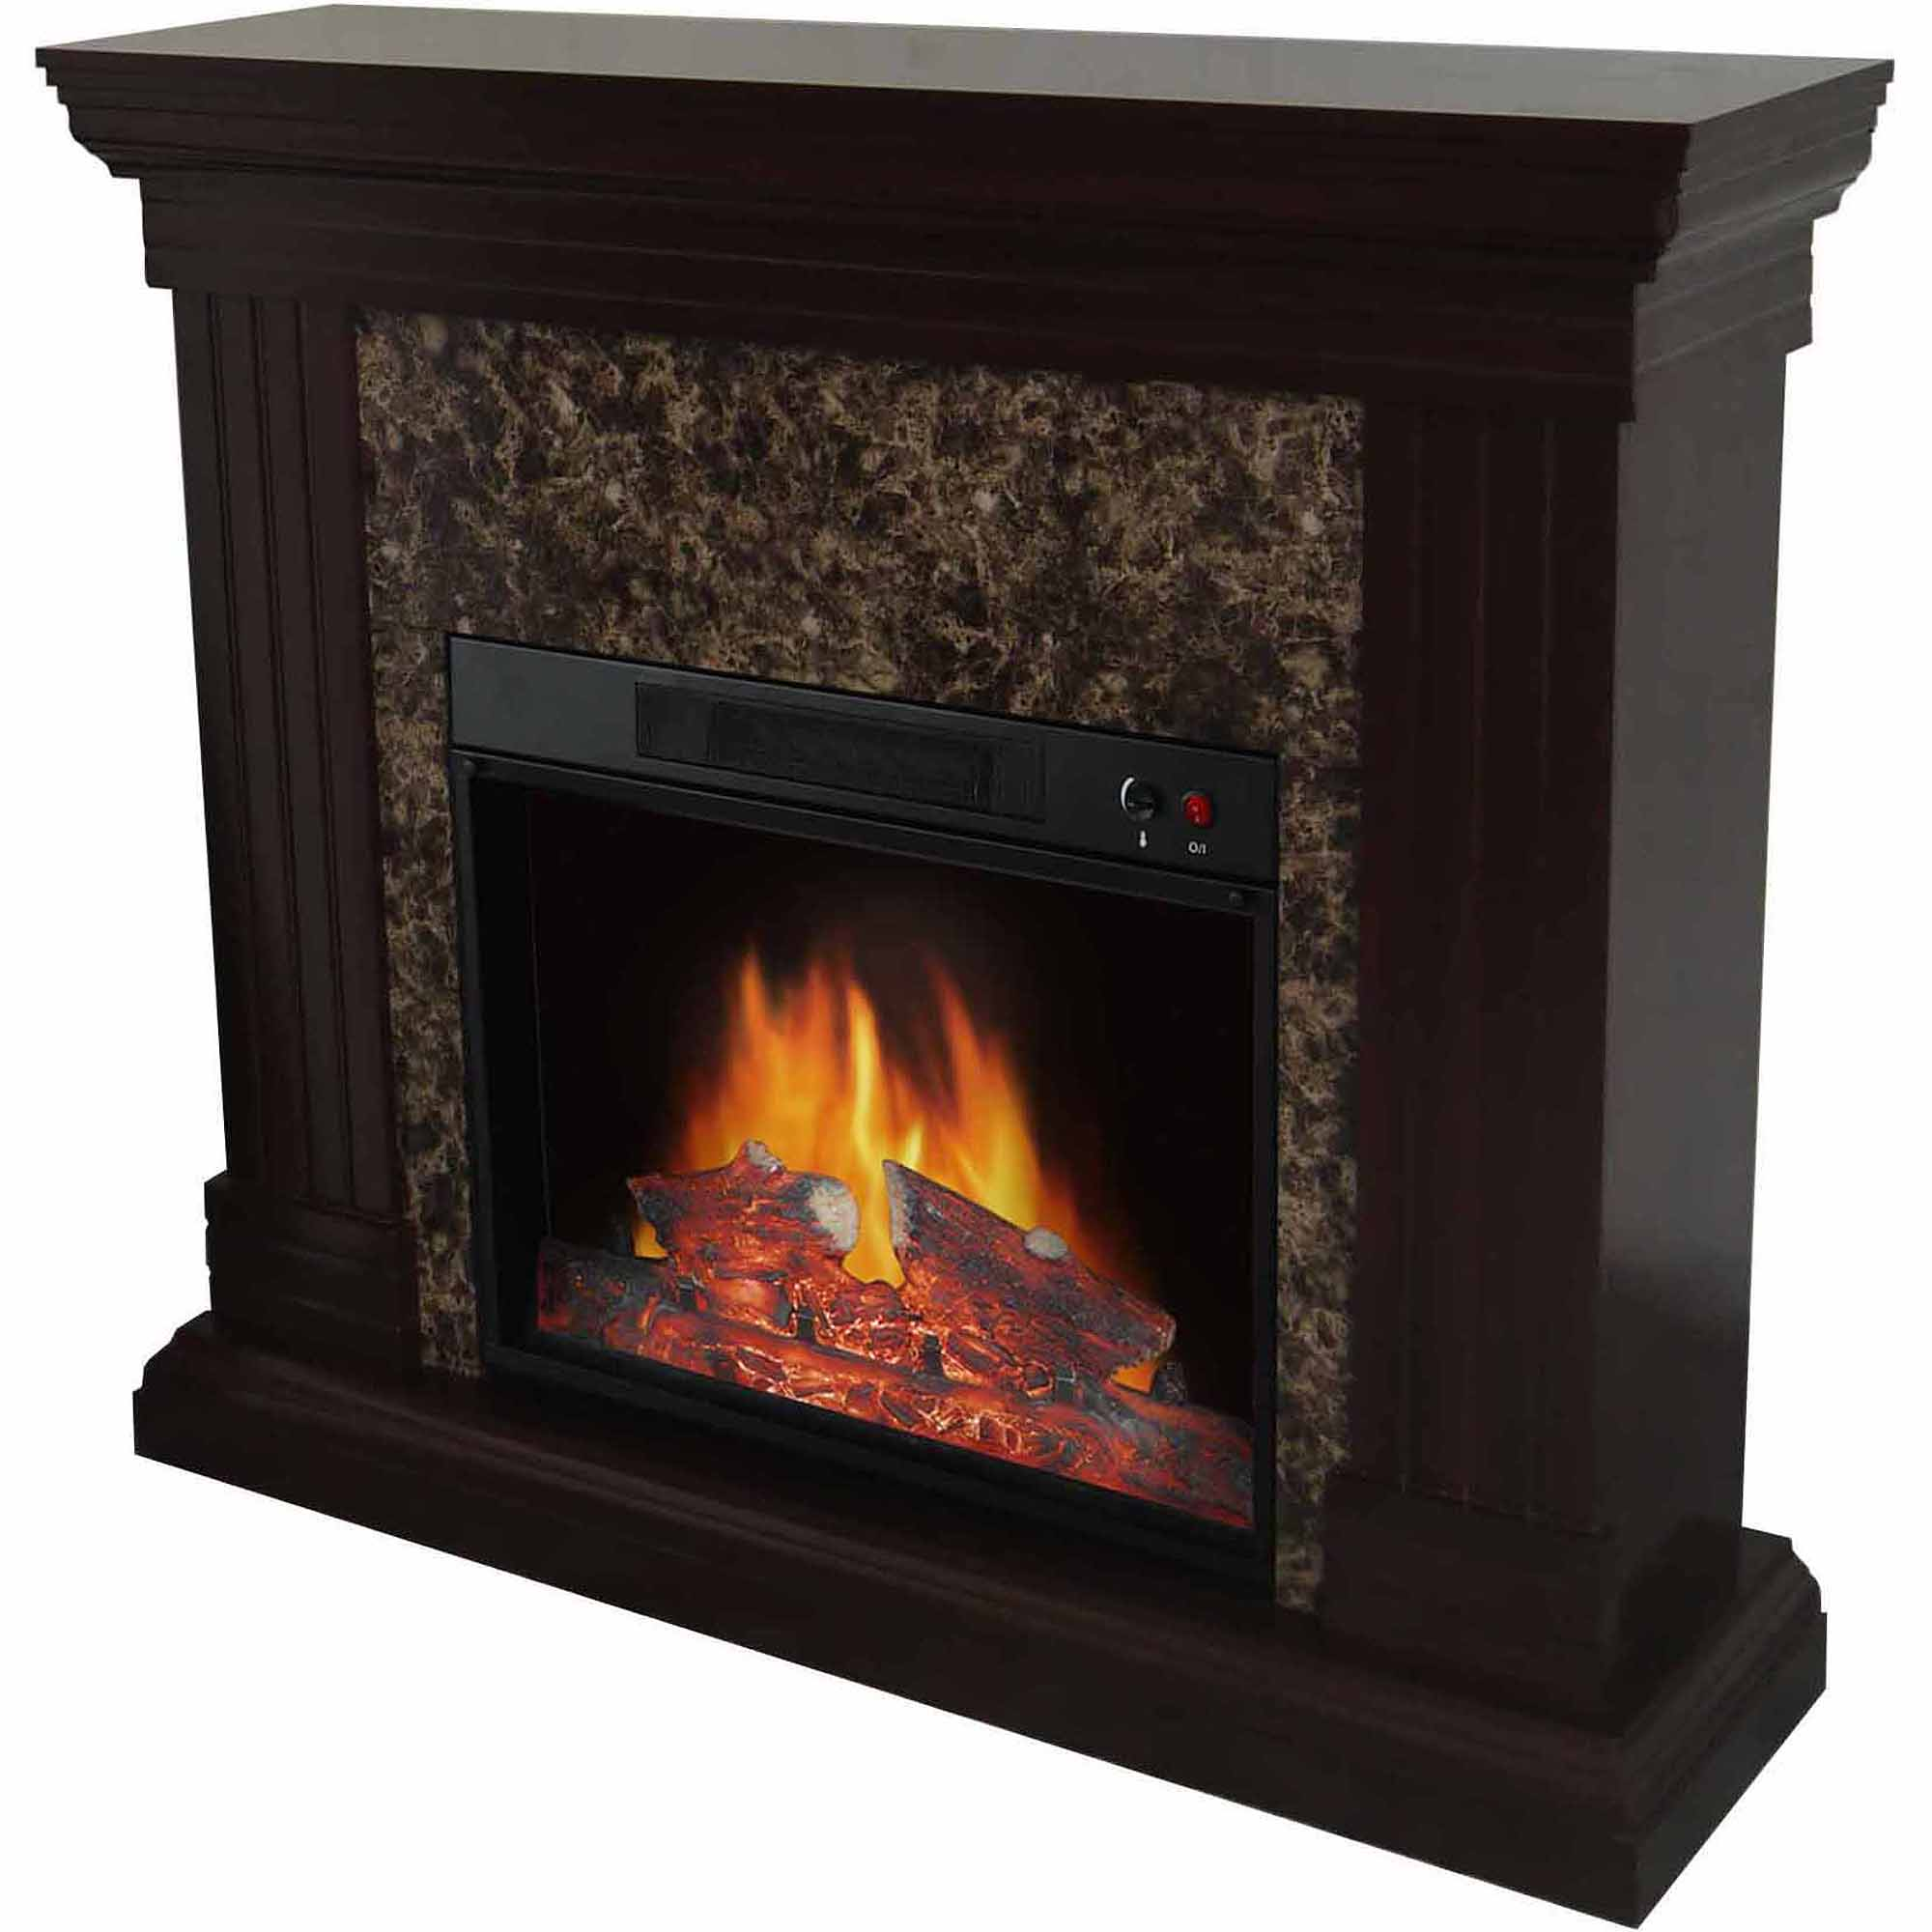 "Free Shipping. Buy Decor Flame Electric Space Heater Fireplace with 44"" Mantle at Walmart.com"